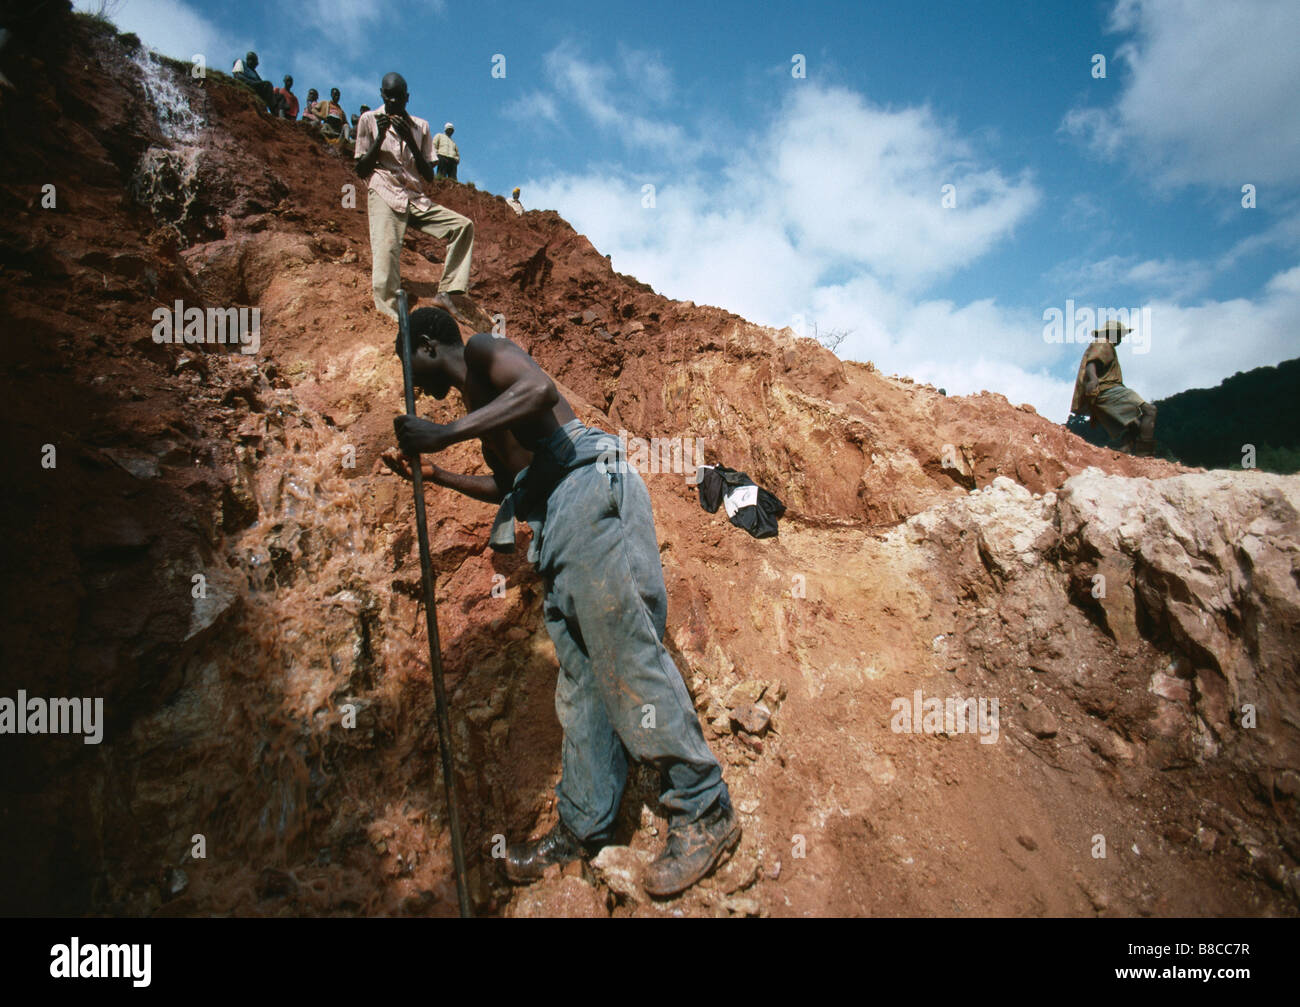 GOLD MINER AT WORK - Stock Image